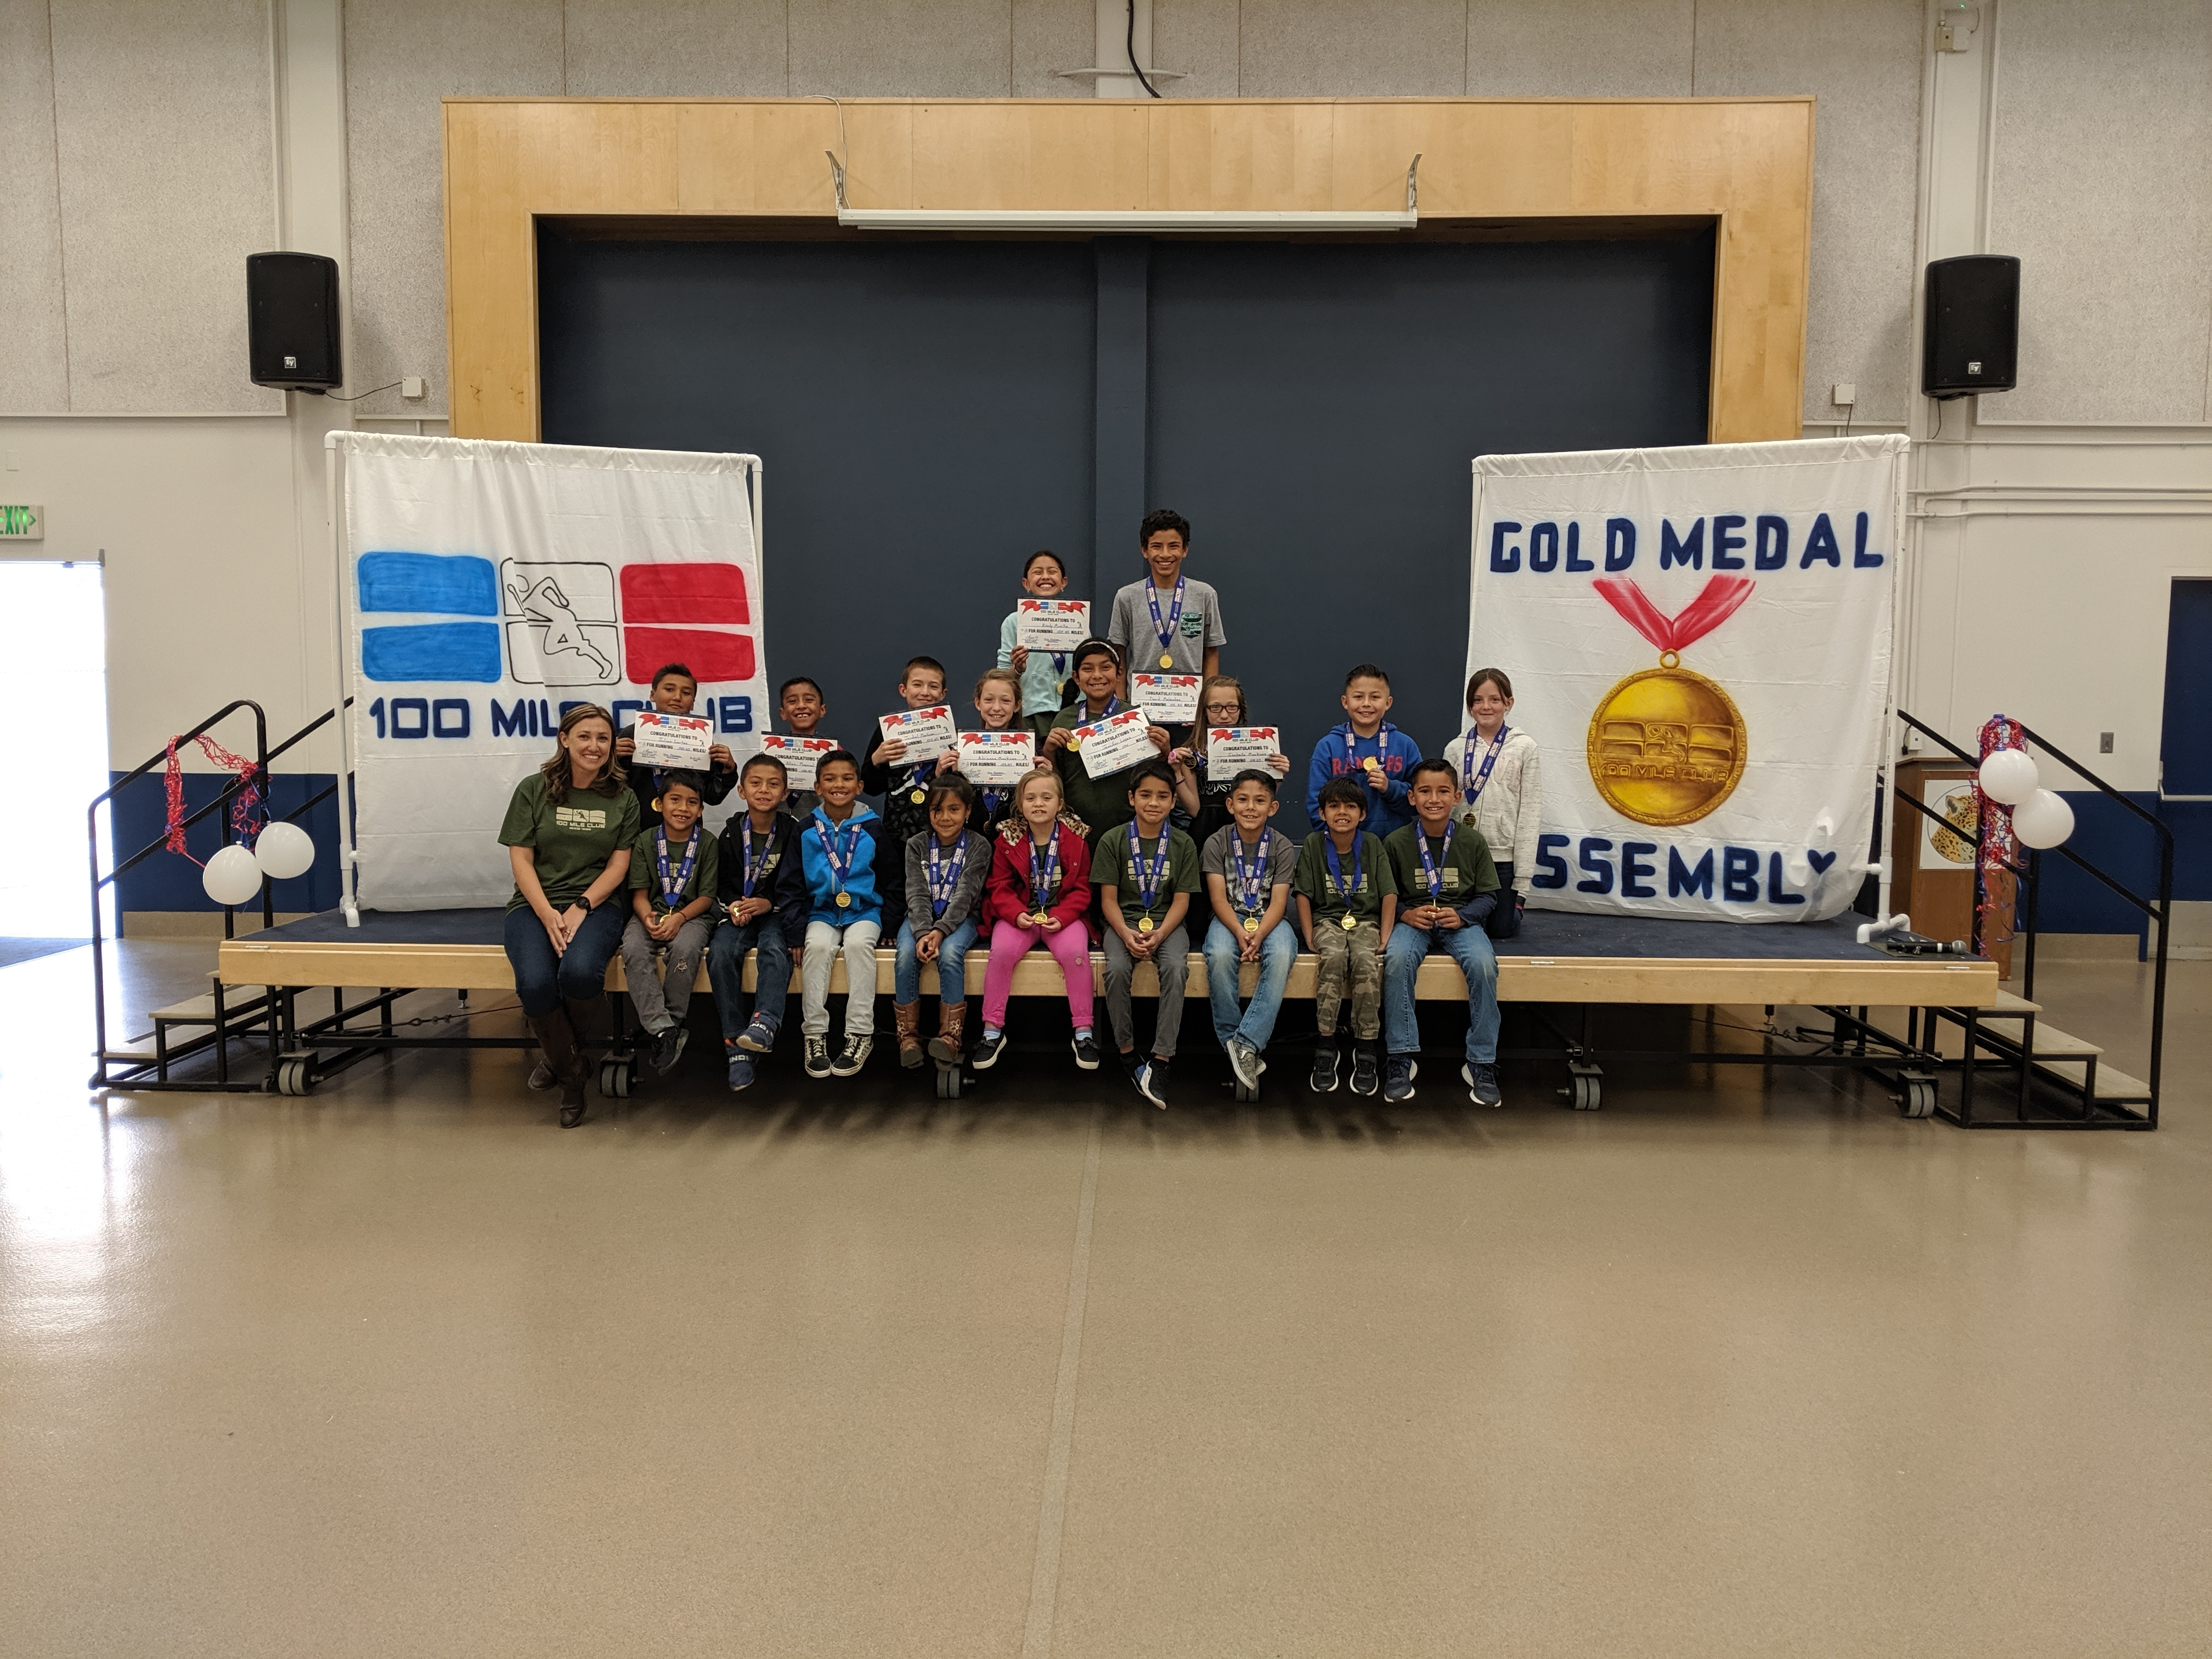 Picture of 100 Mile Club Gold Medal Winners